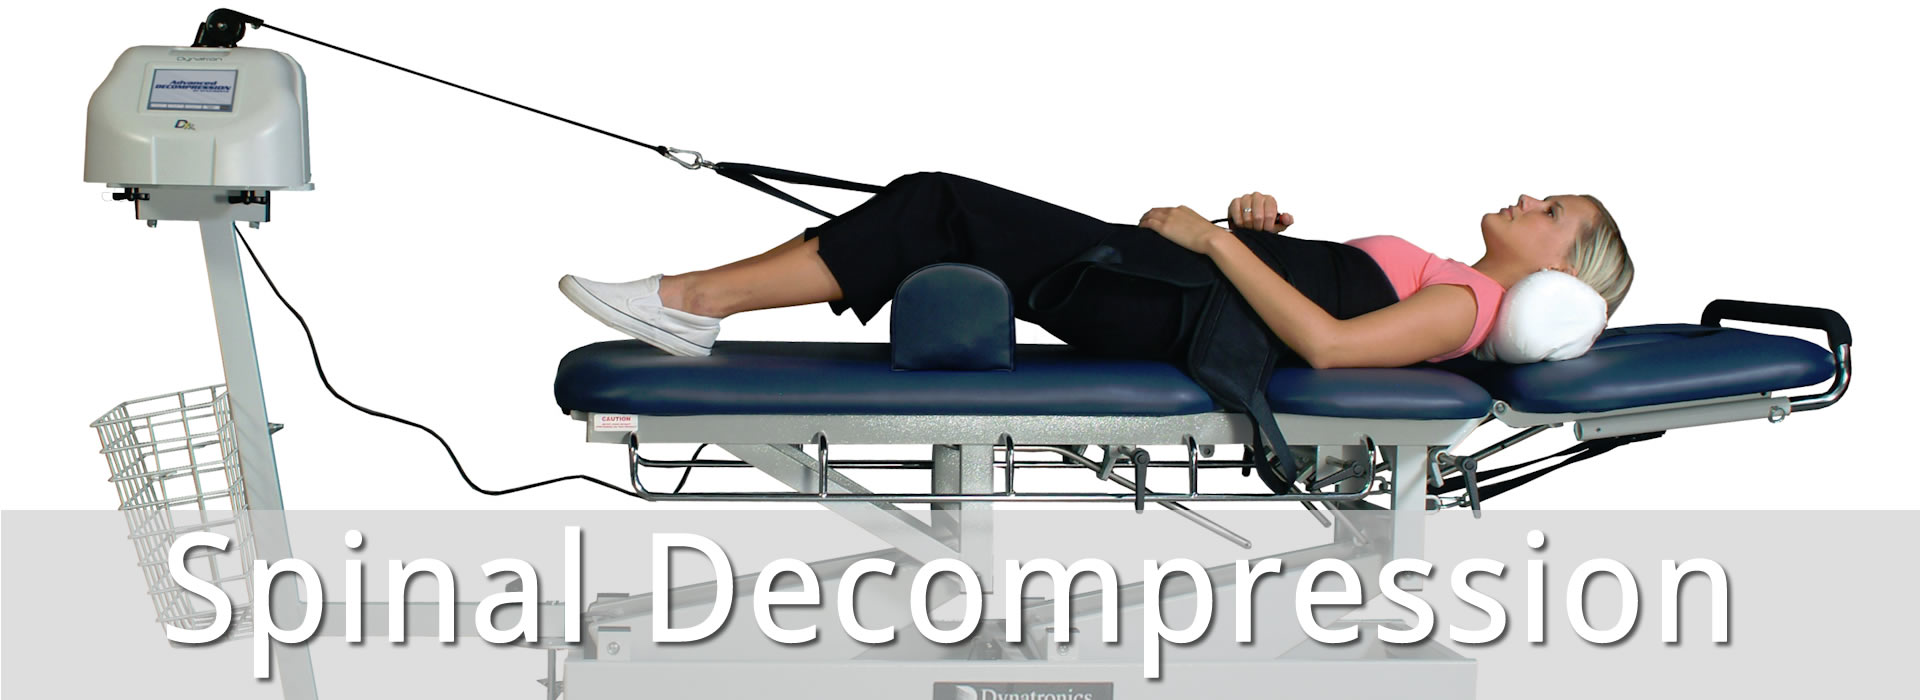 Image result for Spinal Decompression Therapy